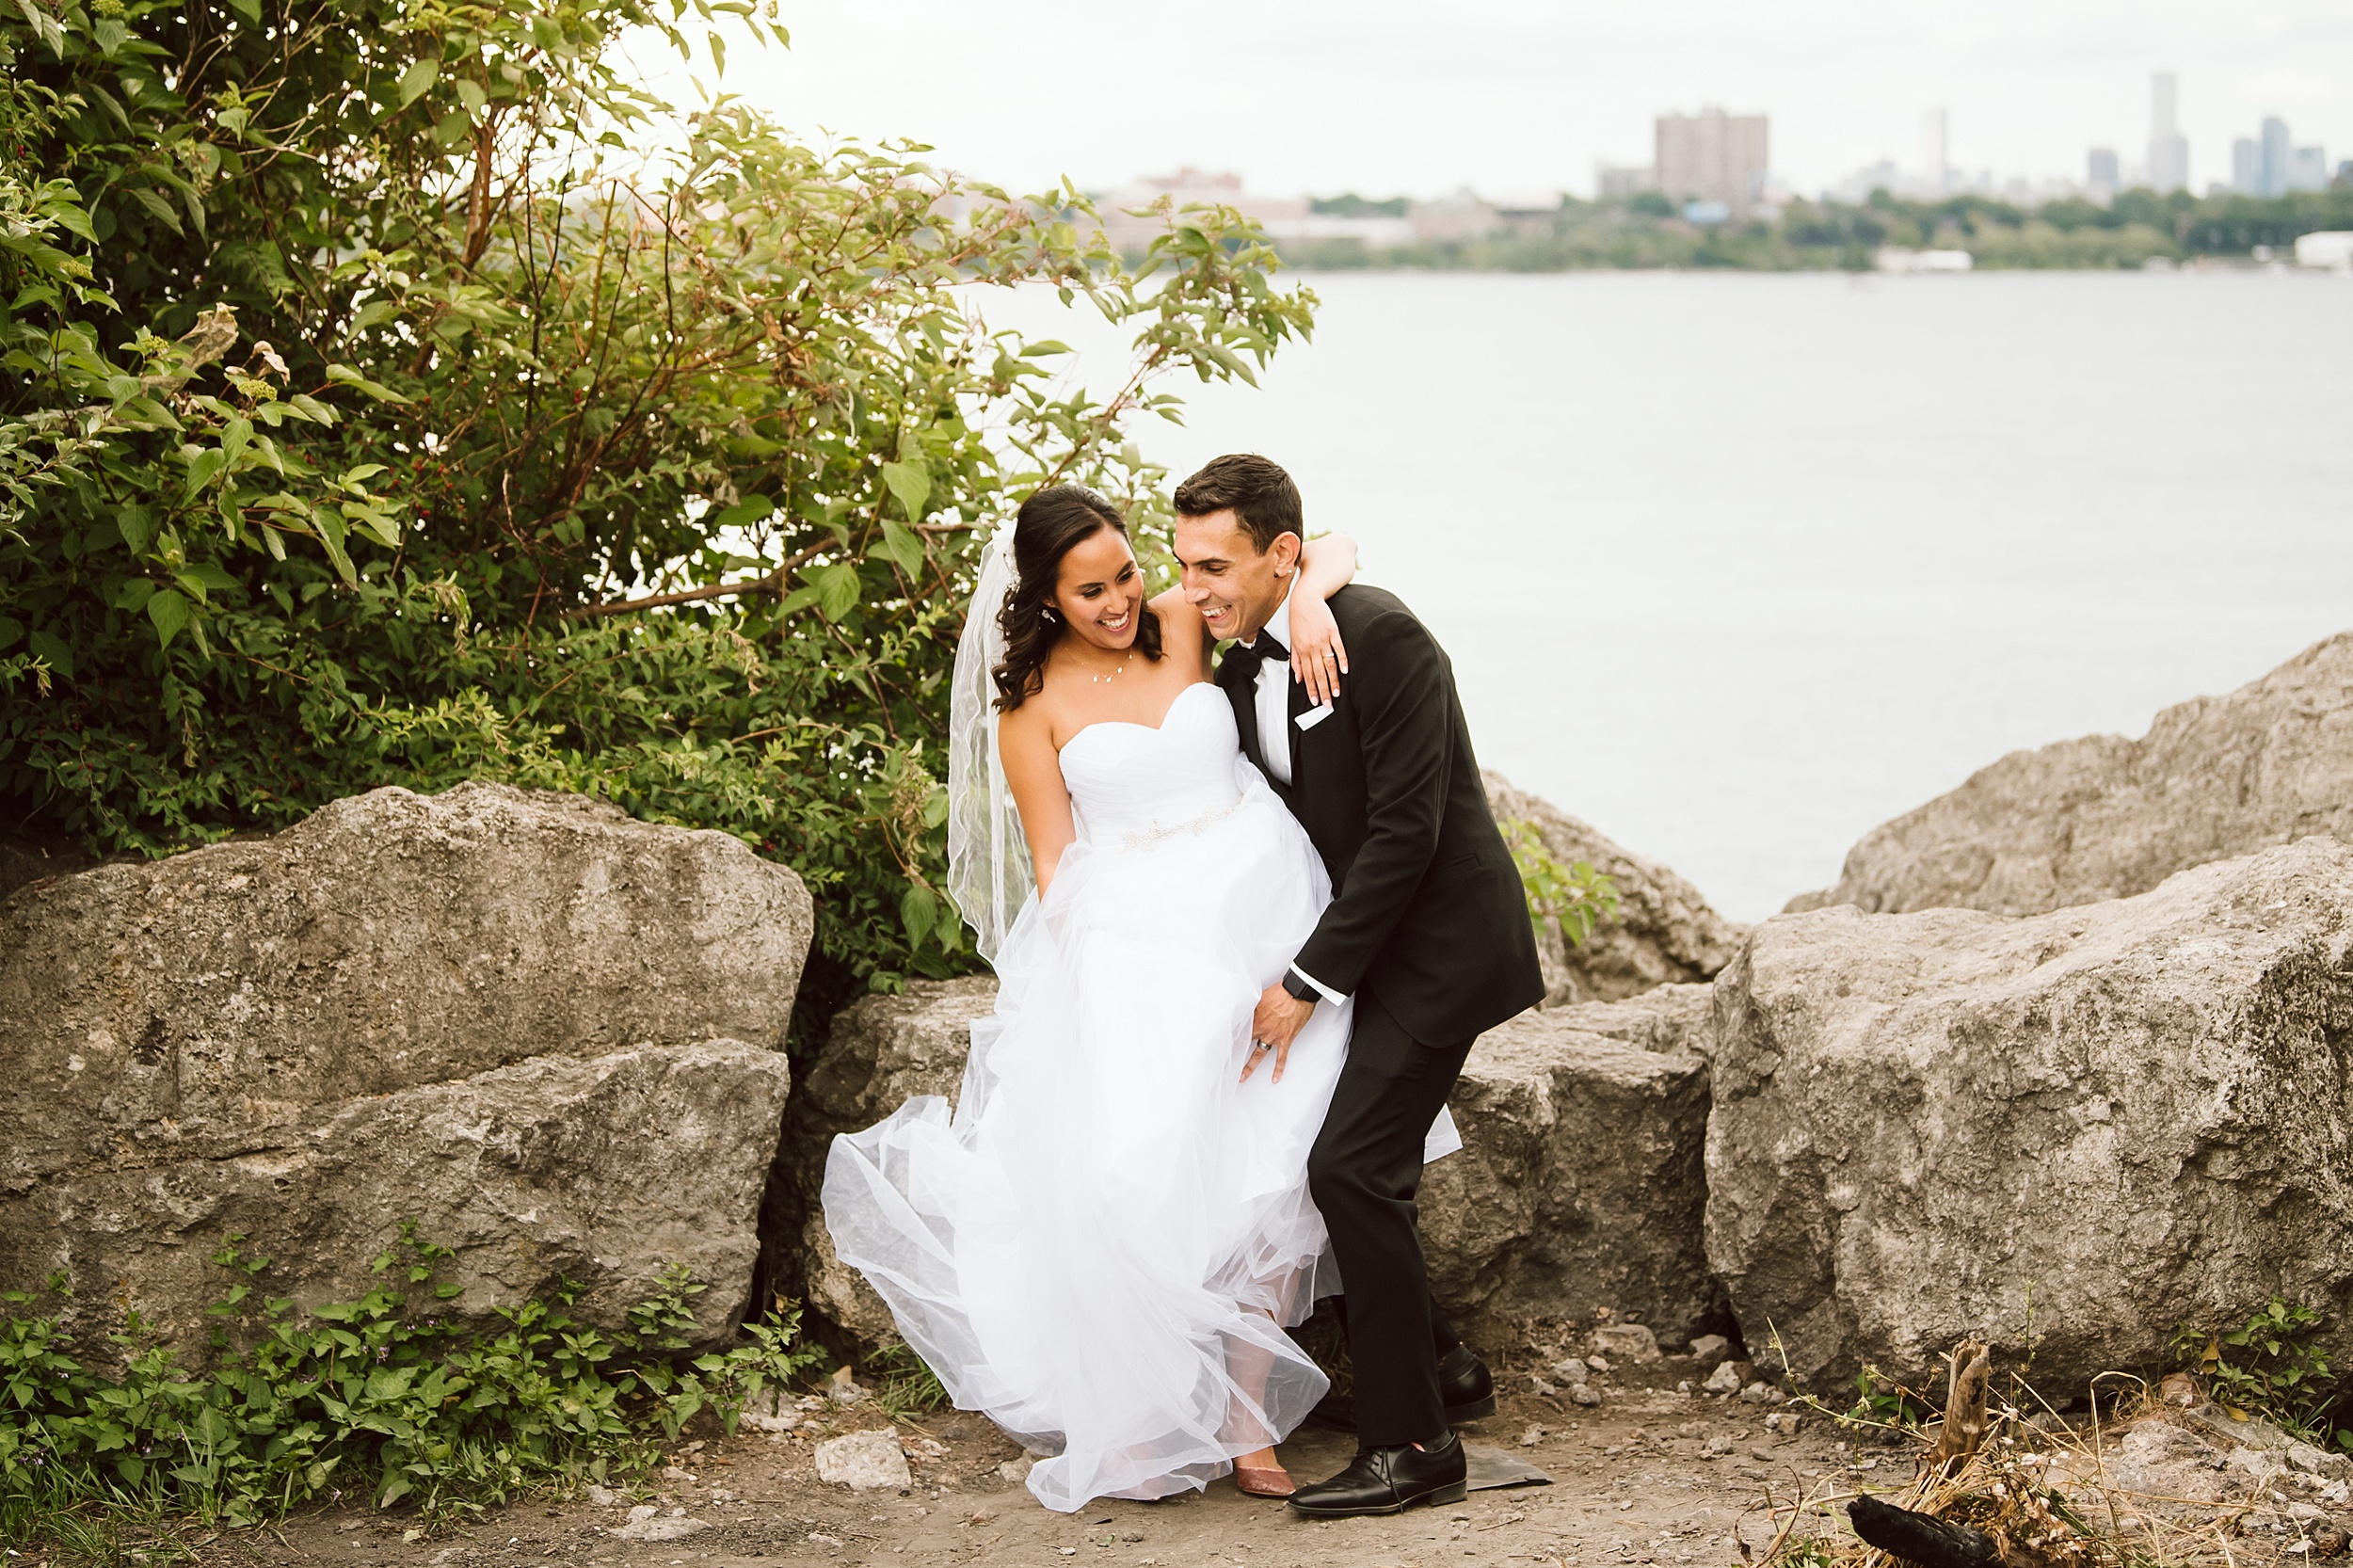 Toronto_Wedding_Photographer_Catholic_Portuguese_0062.jpg